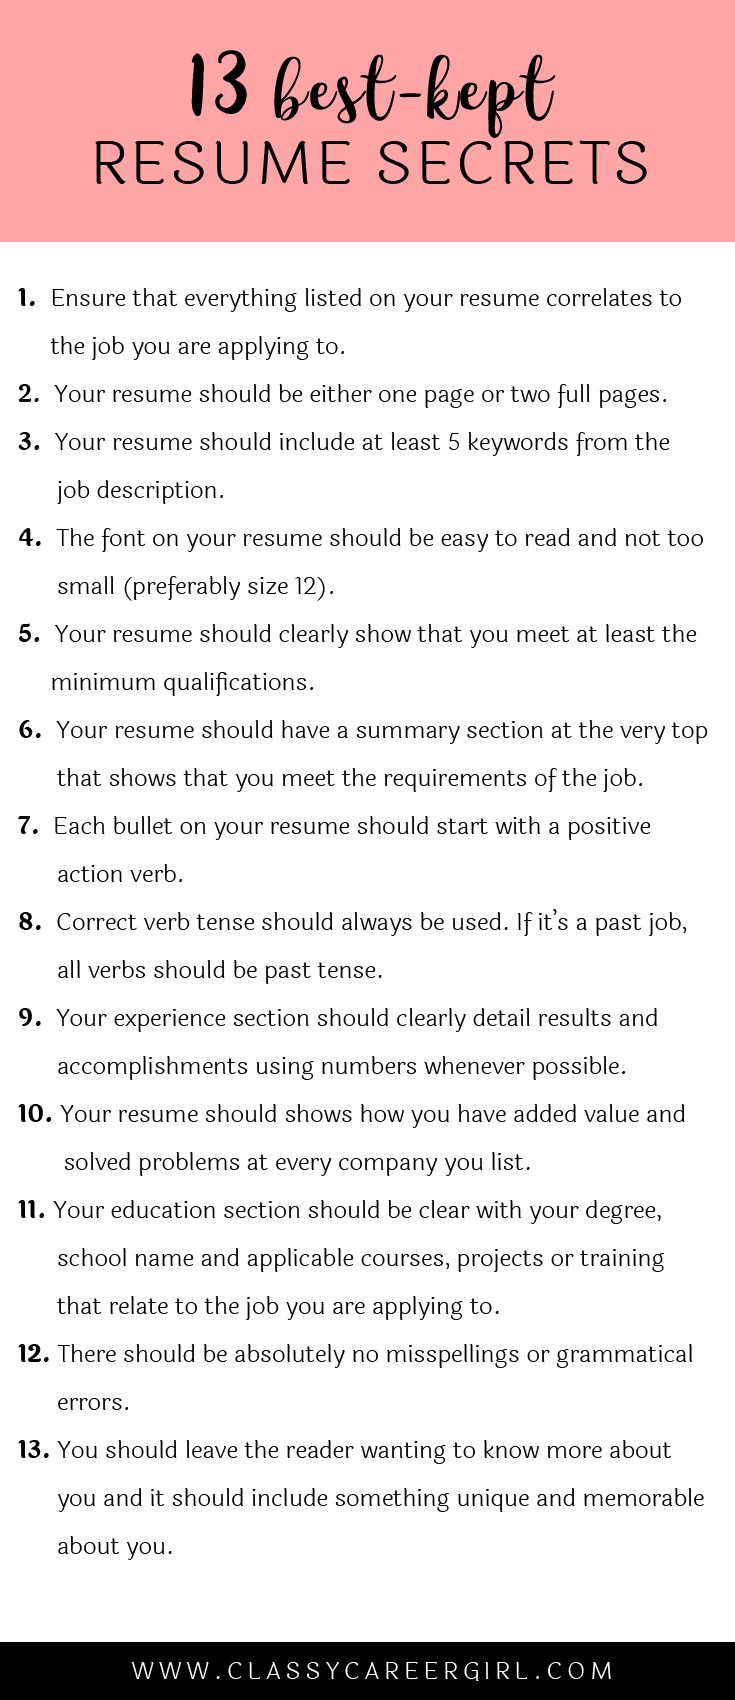 Picnictoimpeachus  Winning  Ideas About Resume On Pinterest  Cv Format Resume Cv And  With Interesting Some Hiring Managers Will Toss Your Resume Out If You Dont Know These  With Enchanting Summary On Resume Also Bartending Resume In Addition Store Manager Resume And Professional Resume Writing Services As Well As Skills To Include On Resume Additionally Resume Types From Pinterestcom With Picnictoimpeachus  Interesting  Ideas About Resume On Pinterest  Cv Format Resume Cv And  With Enchanting Some Hiring Managers Will Toss Your Resume Out If You Dont Know These  And Winning Summary On Resume Also Bartending Resume In Addition Store Manager Resume From Pinterestcom